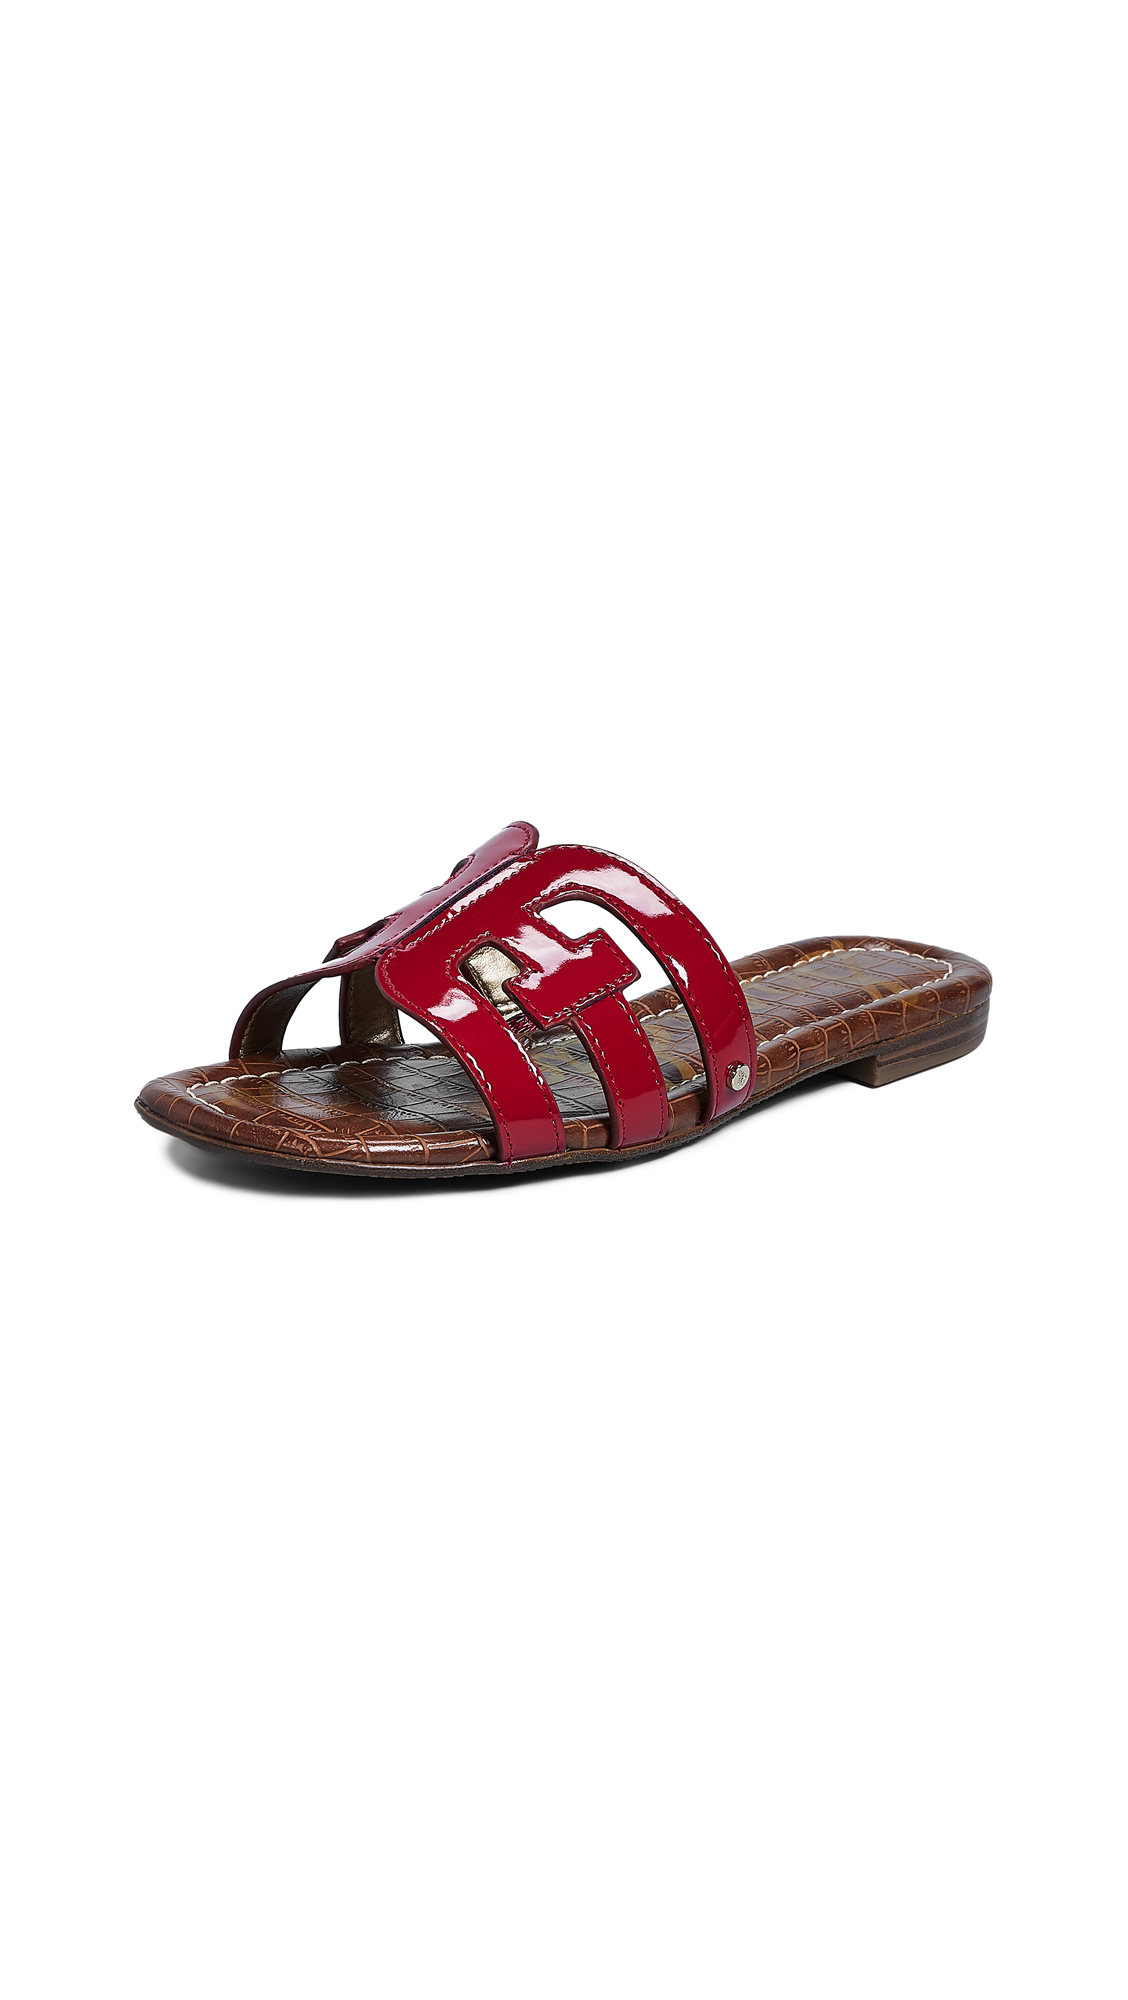 Sam Edelman Bay Slides - Deep Red